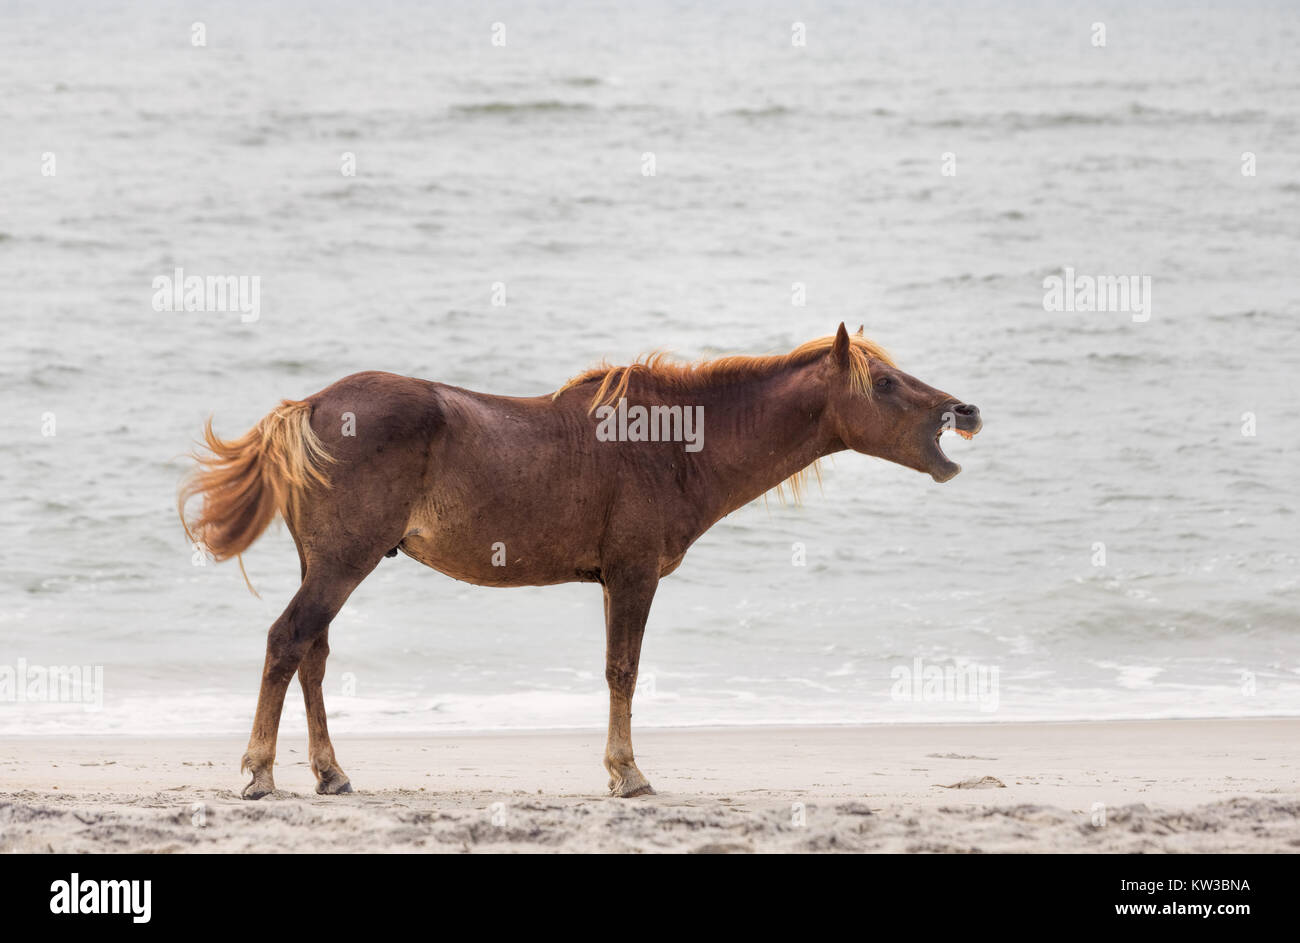 A Wild pony, horse, of Assateague Island, Maryland, USA on the beach. These animals are also known as Assateague Stock Photo